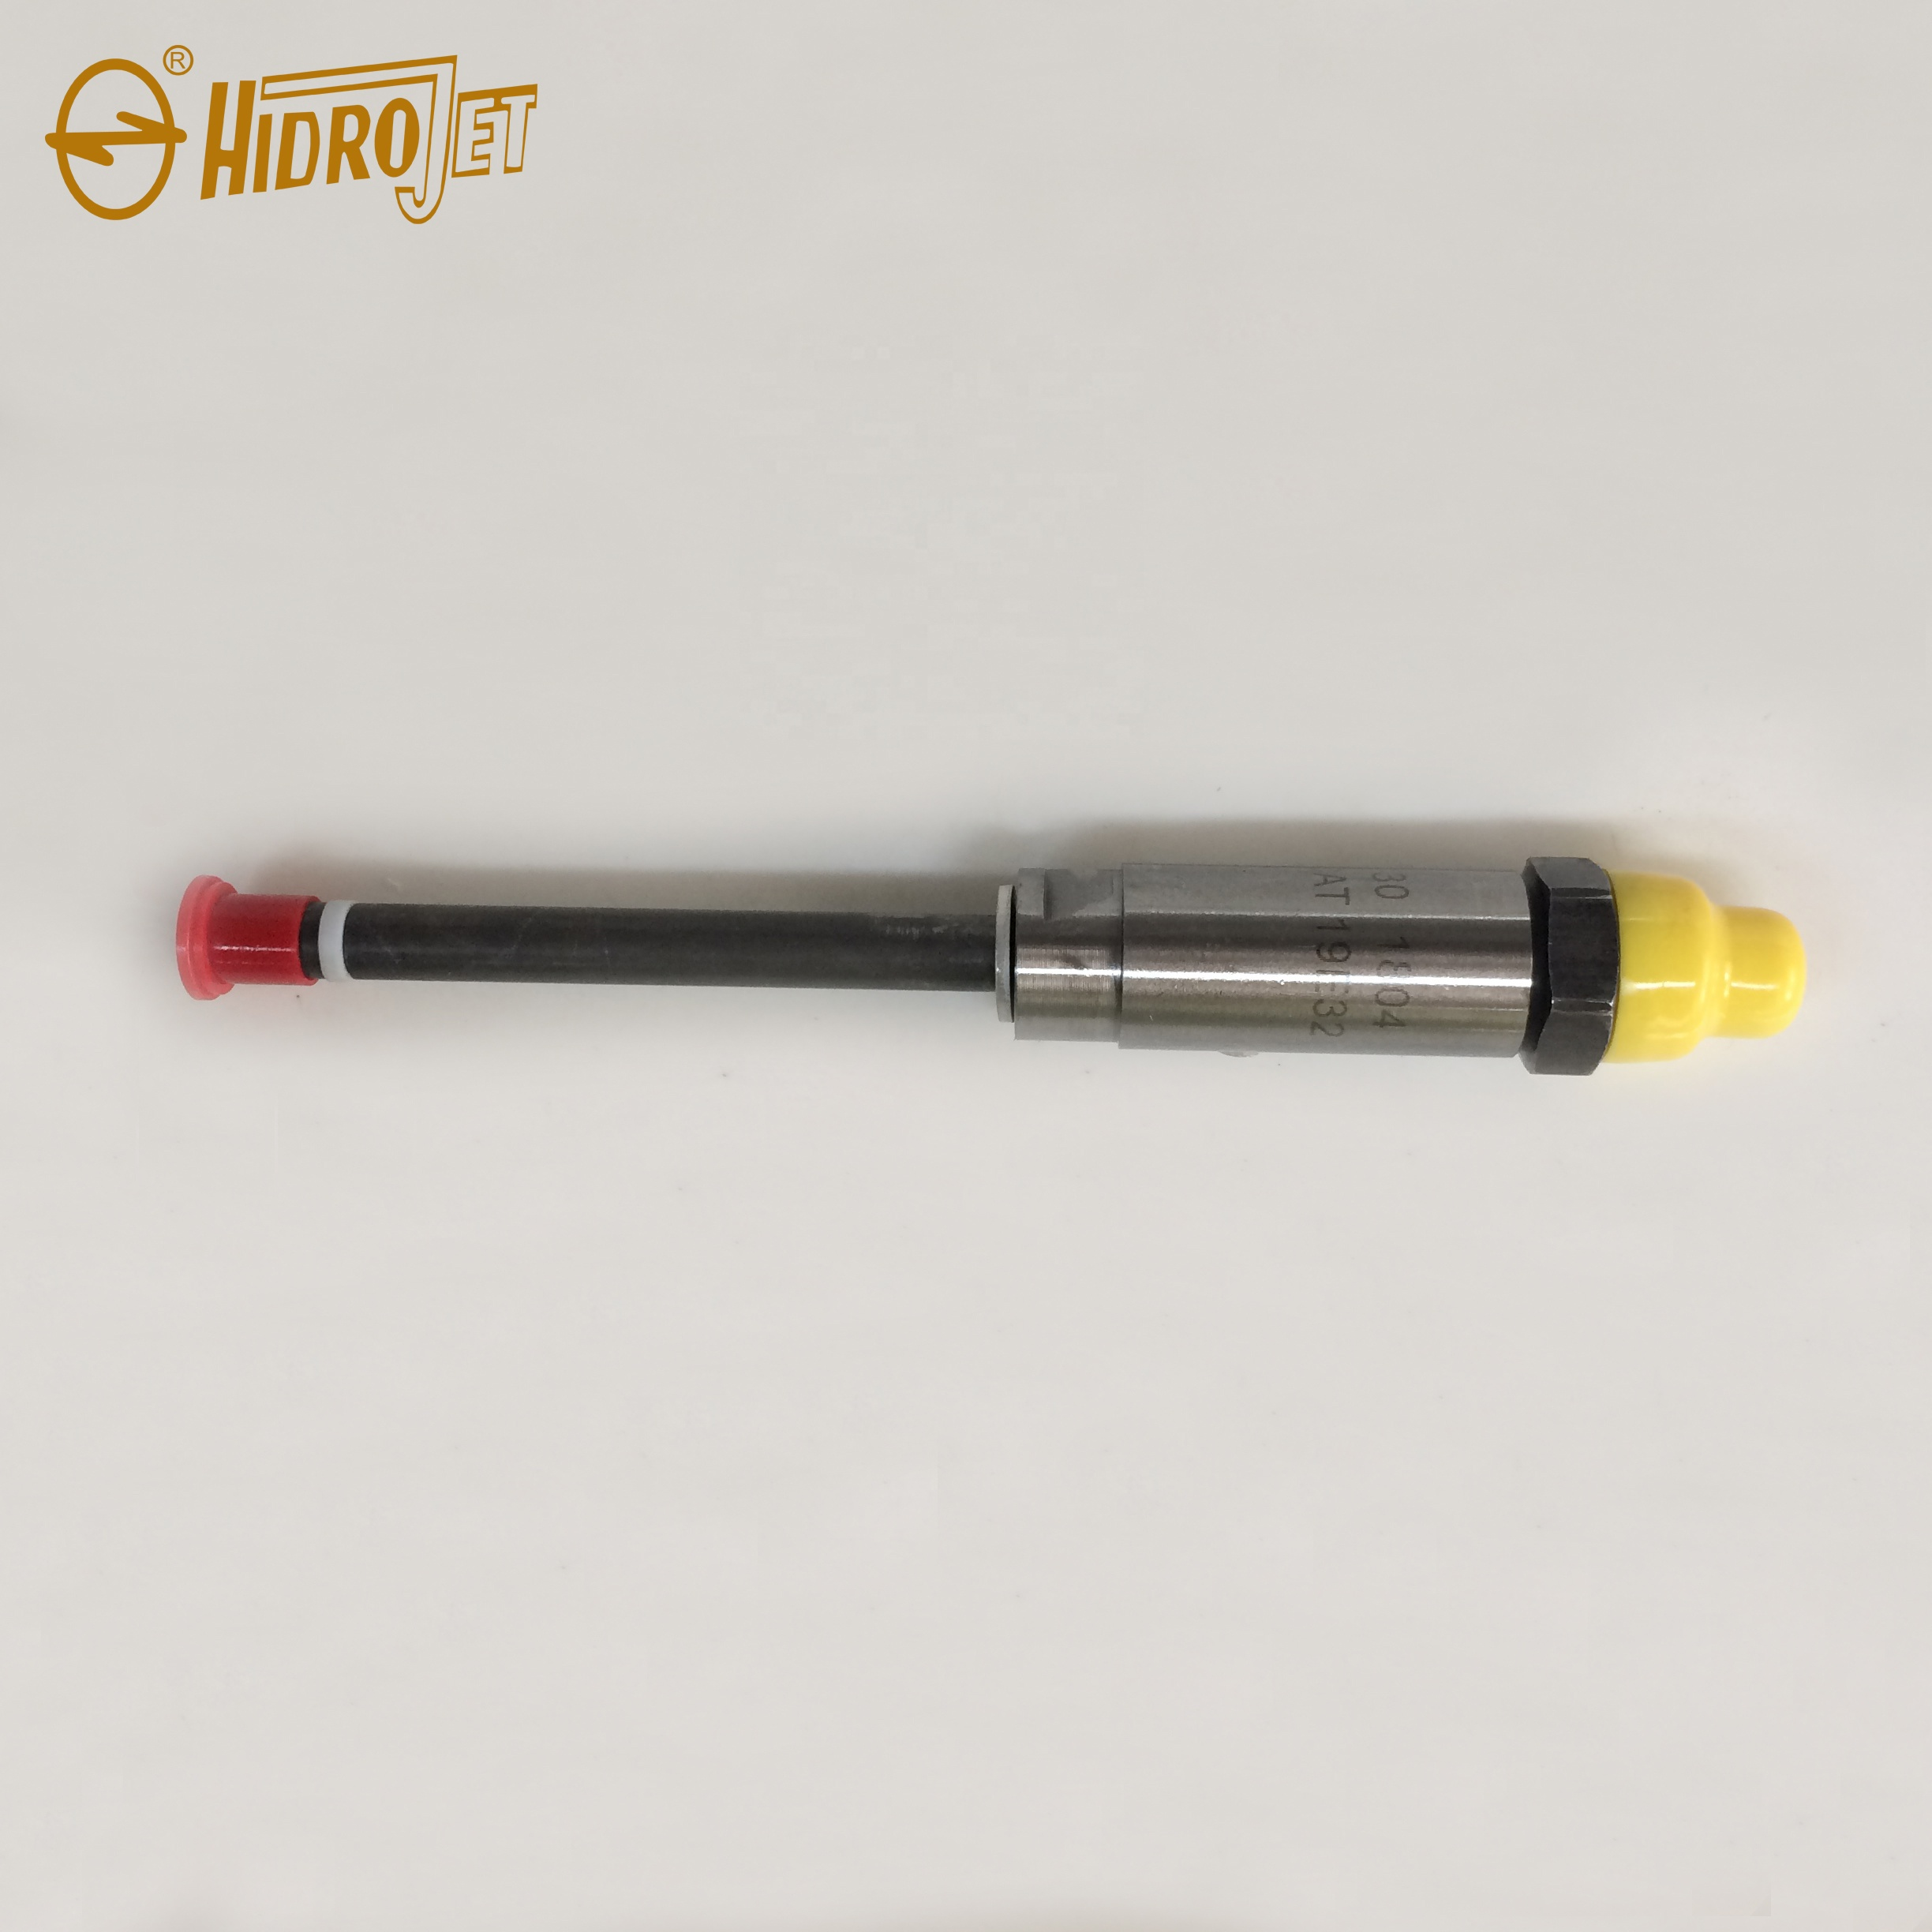 Diesel engine parts Fuel <strong>injector</strong> 130-1804 19E32 for 3412C